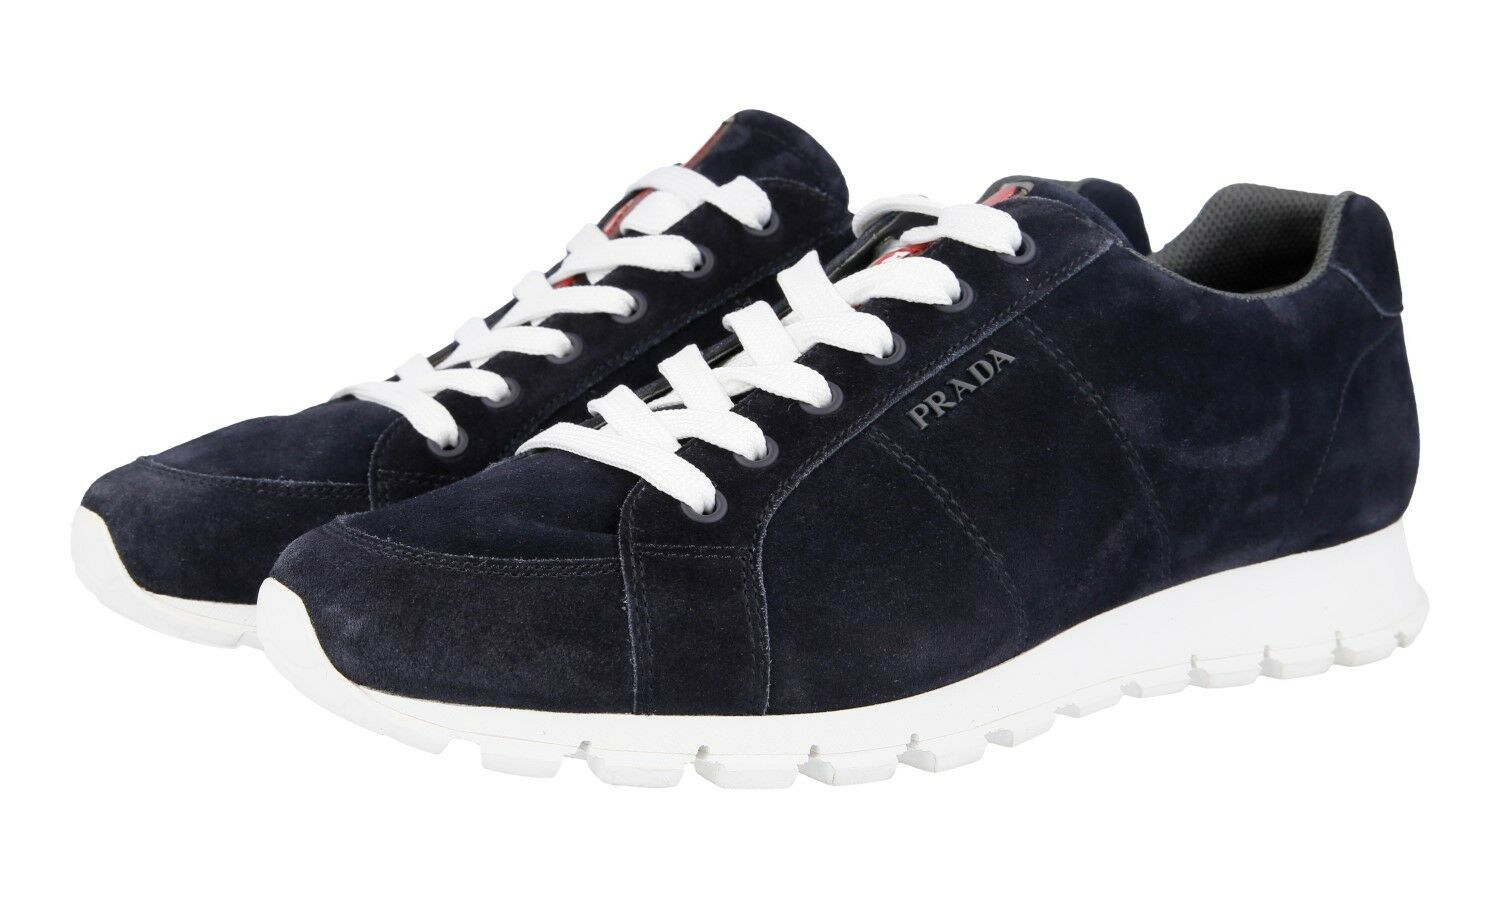 AUTH PRADA MATCHRACE SNEAKERS SHOES 4E3233 blueE SUEDE NEW 8,5 42,5 43